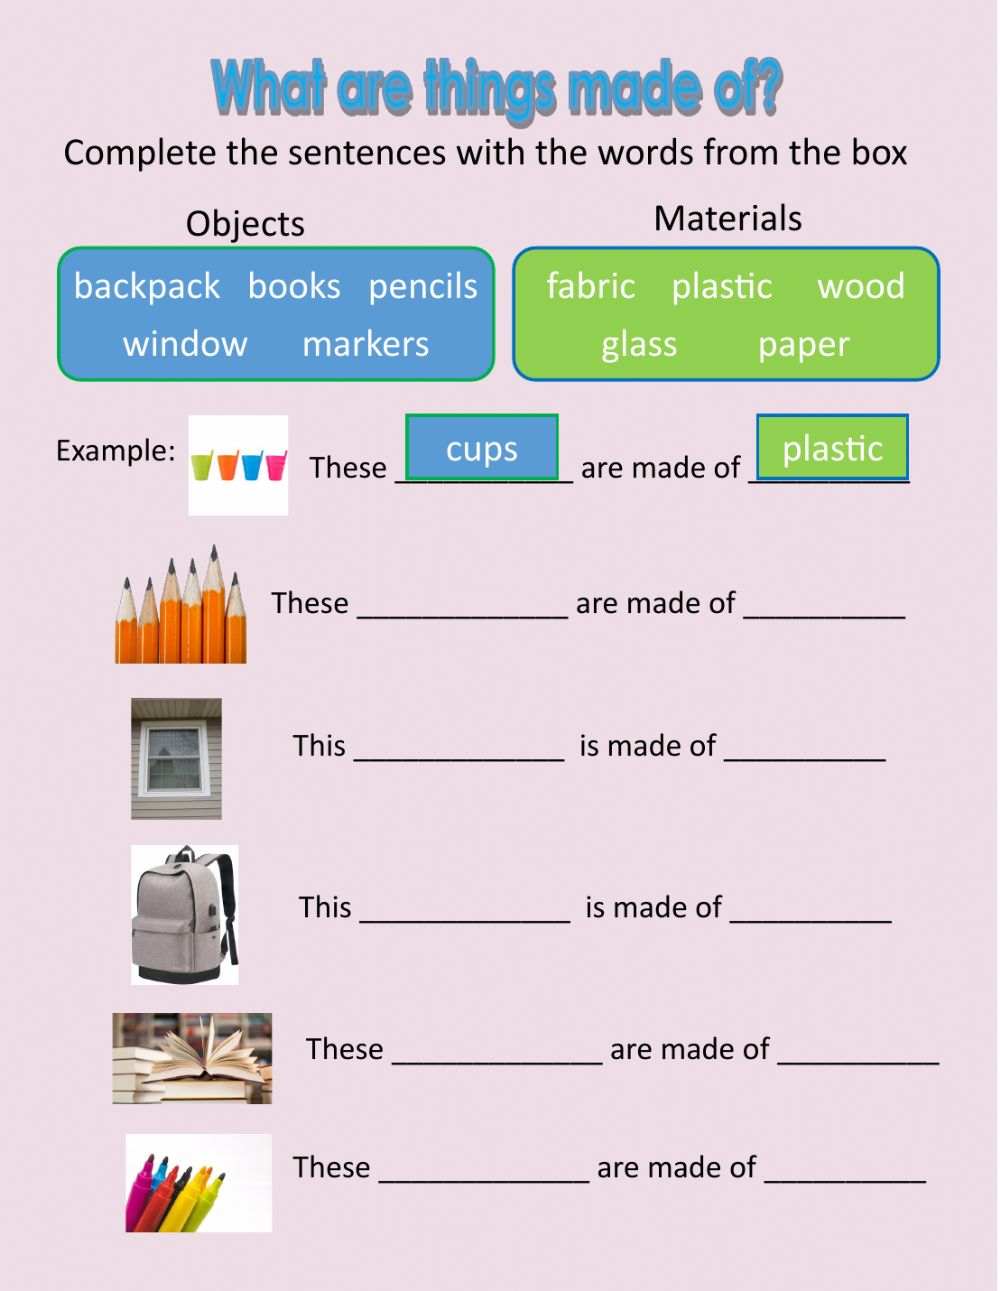 medium resolution of What are things made of? worksheet